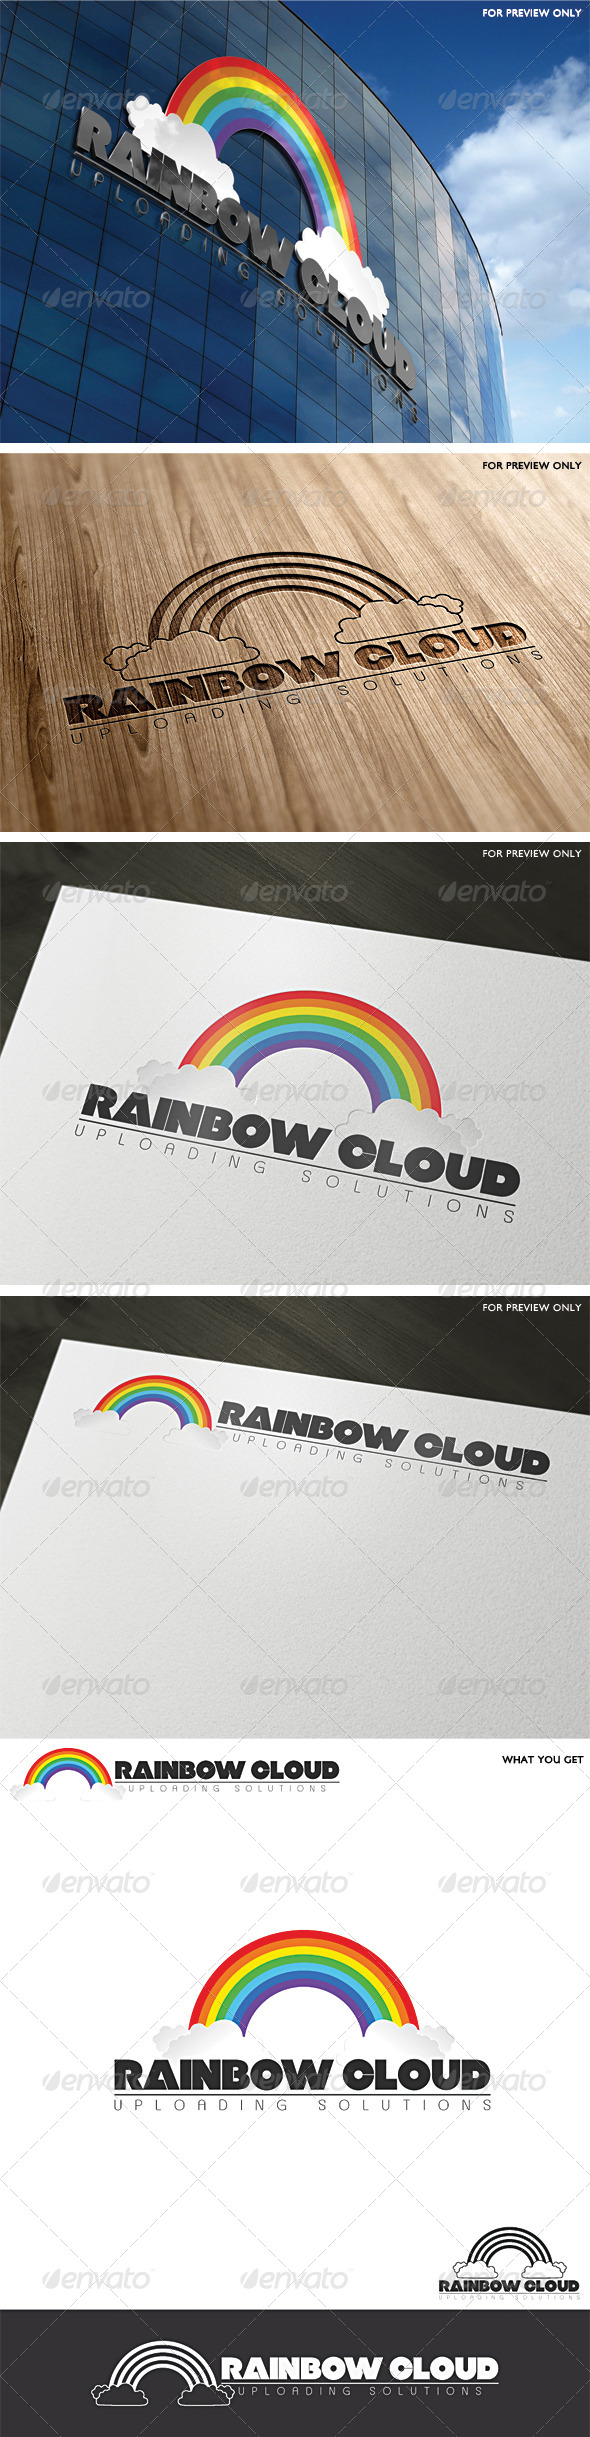 Rainbow Cloud Logo Template - Vector Abstract